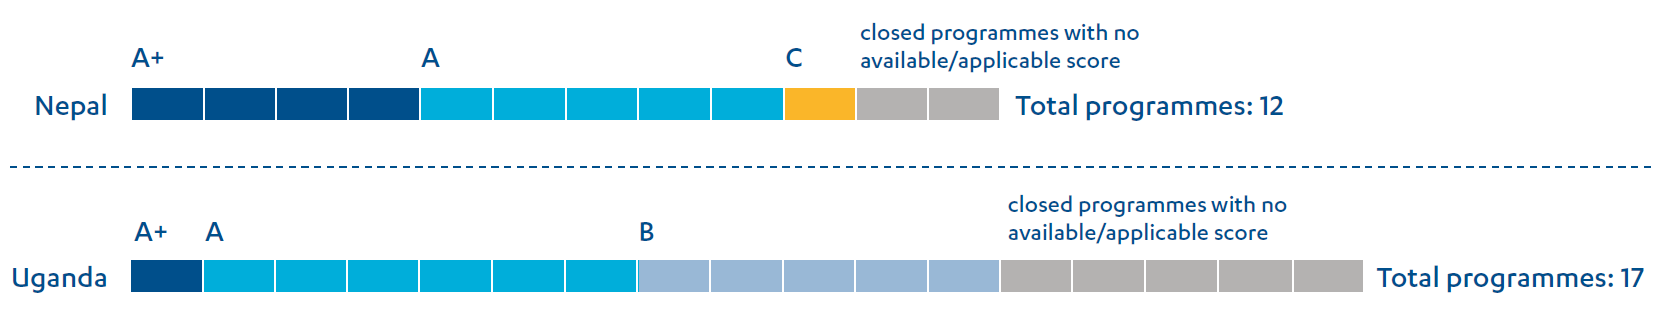 Two bars showings project completion report scores of completed governance programmes in Nepal and Uganda (2009 to present); A+ to C.